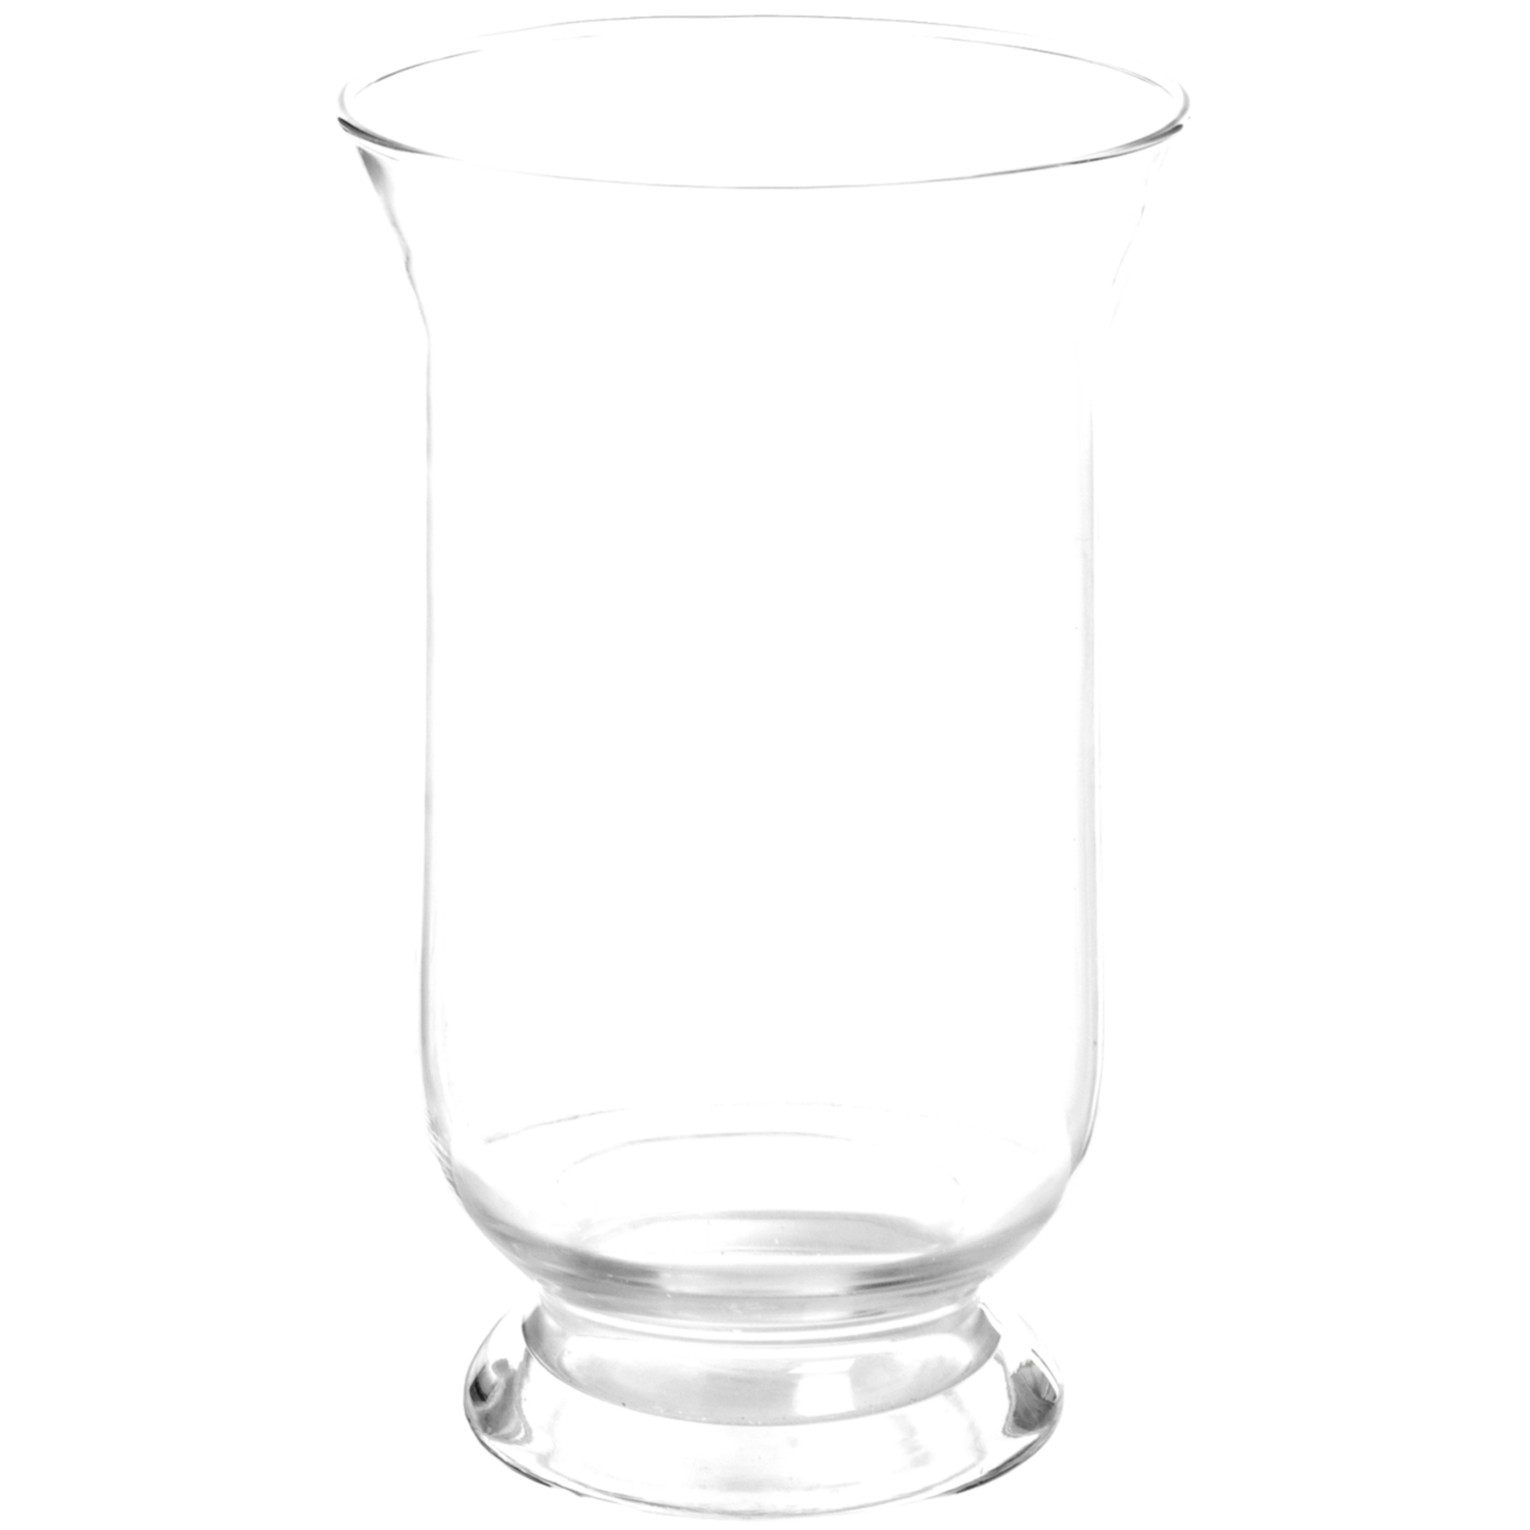 champagne glasses in vase of why you should not go to glass vases wholesale glass vases with regard to large hurricane vases wholesale glass vases wholesale